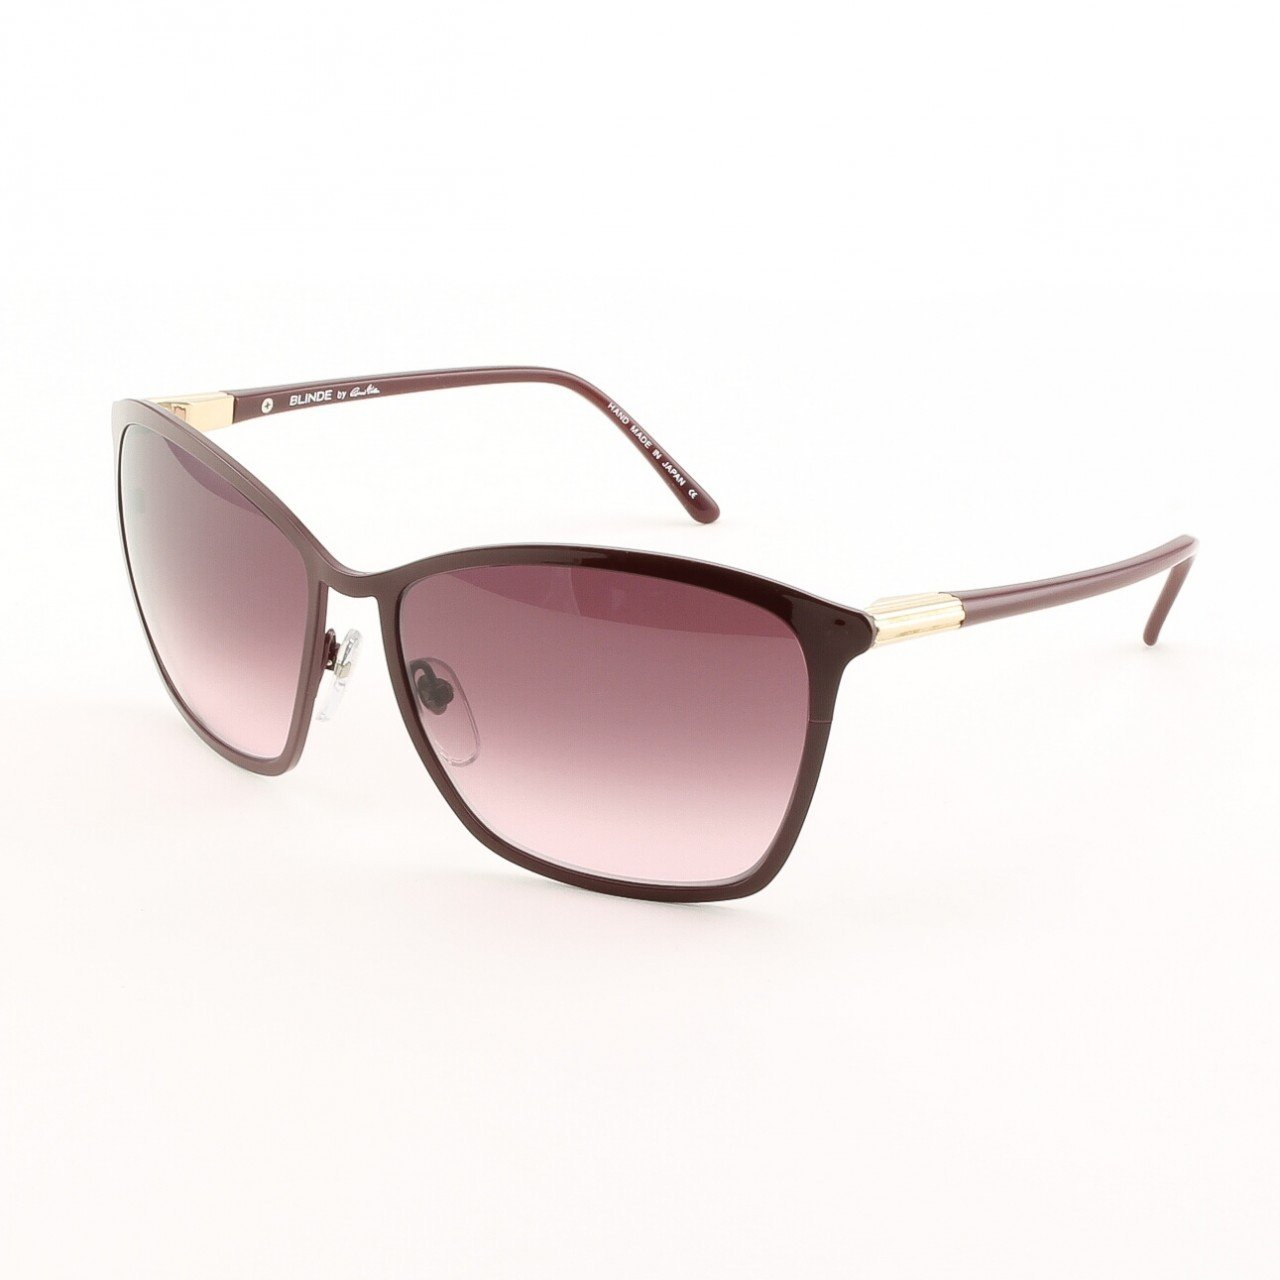 Blinde Ta Da Women's Cat Eye Sunglasses Col. Burgundy with Pink Gradient Lenses